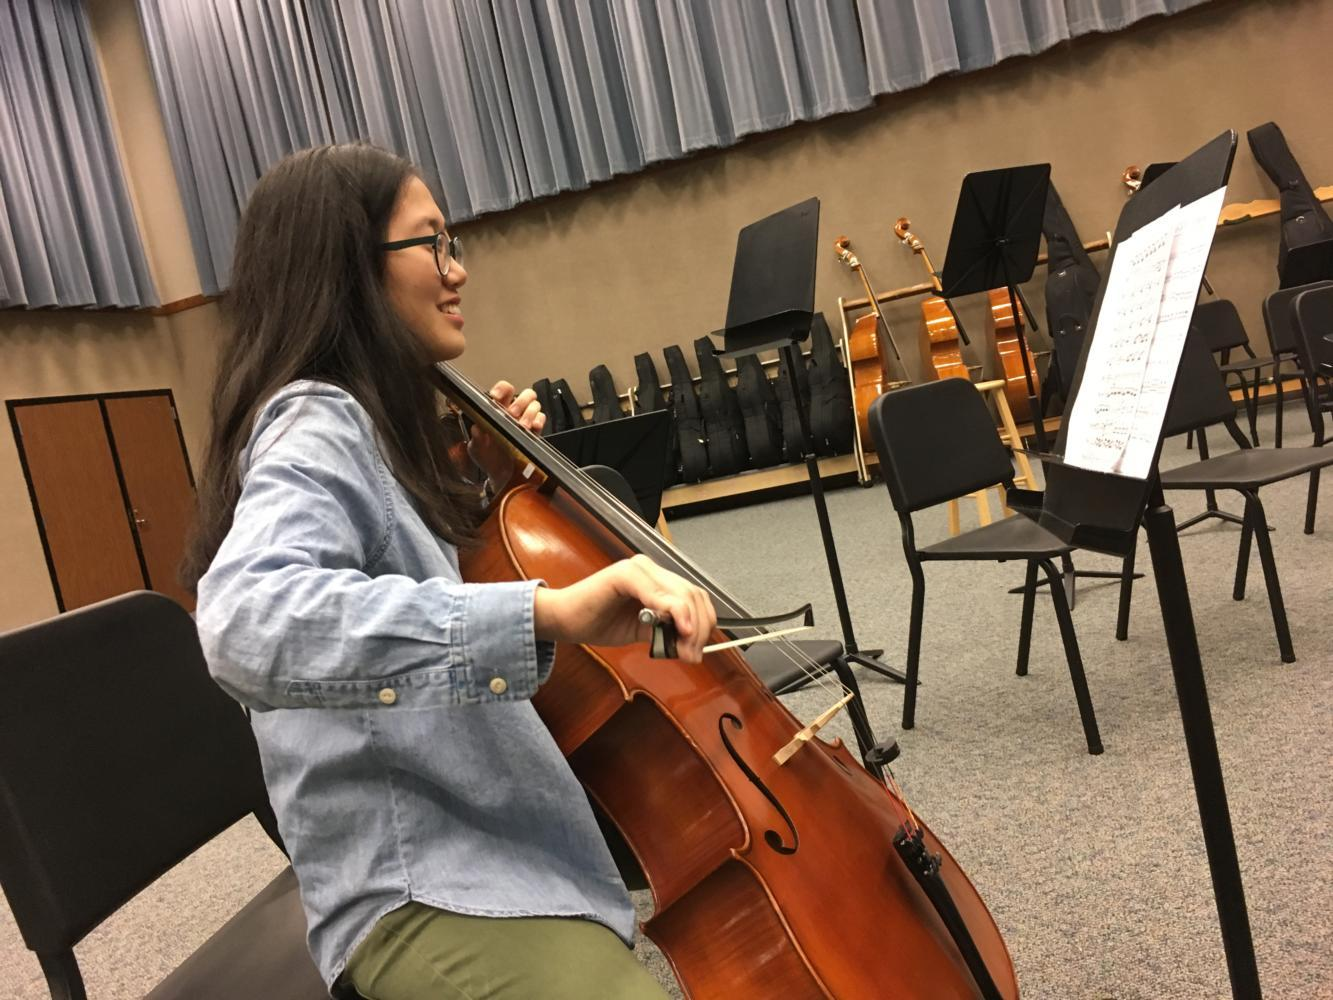 Selin Oh, Camerata cellist and junior, practices her cello in the orchestra room during SRT as a part of small-group rehearsals. Oh said she is excited to be playing a variety of tunes from different operas with the Symphony orchestra.